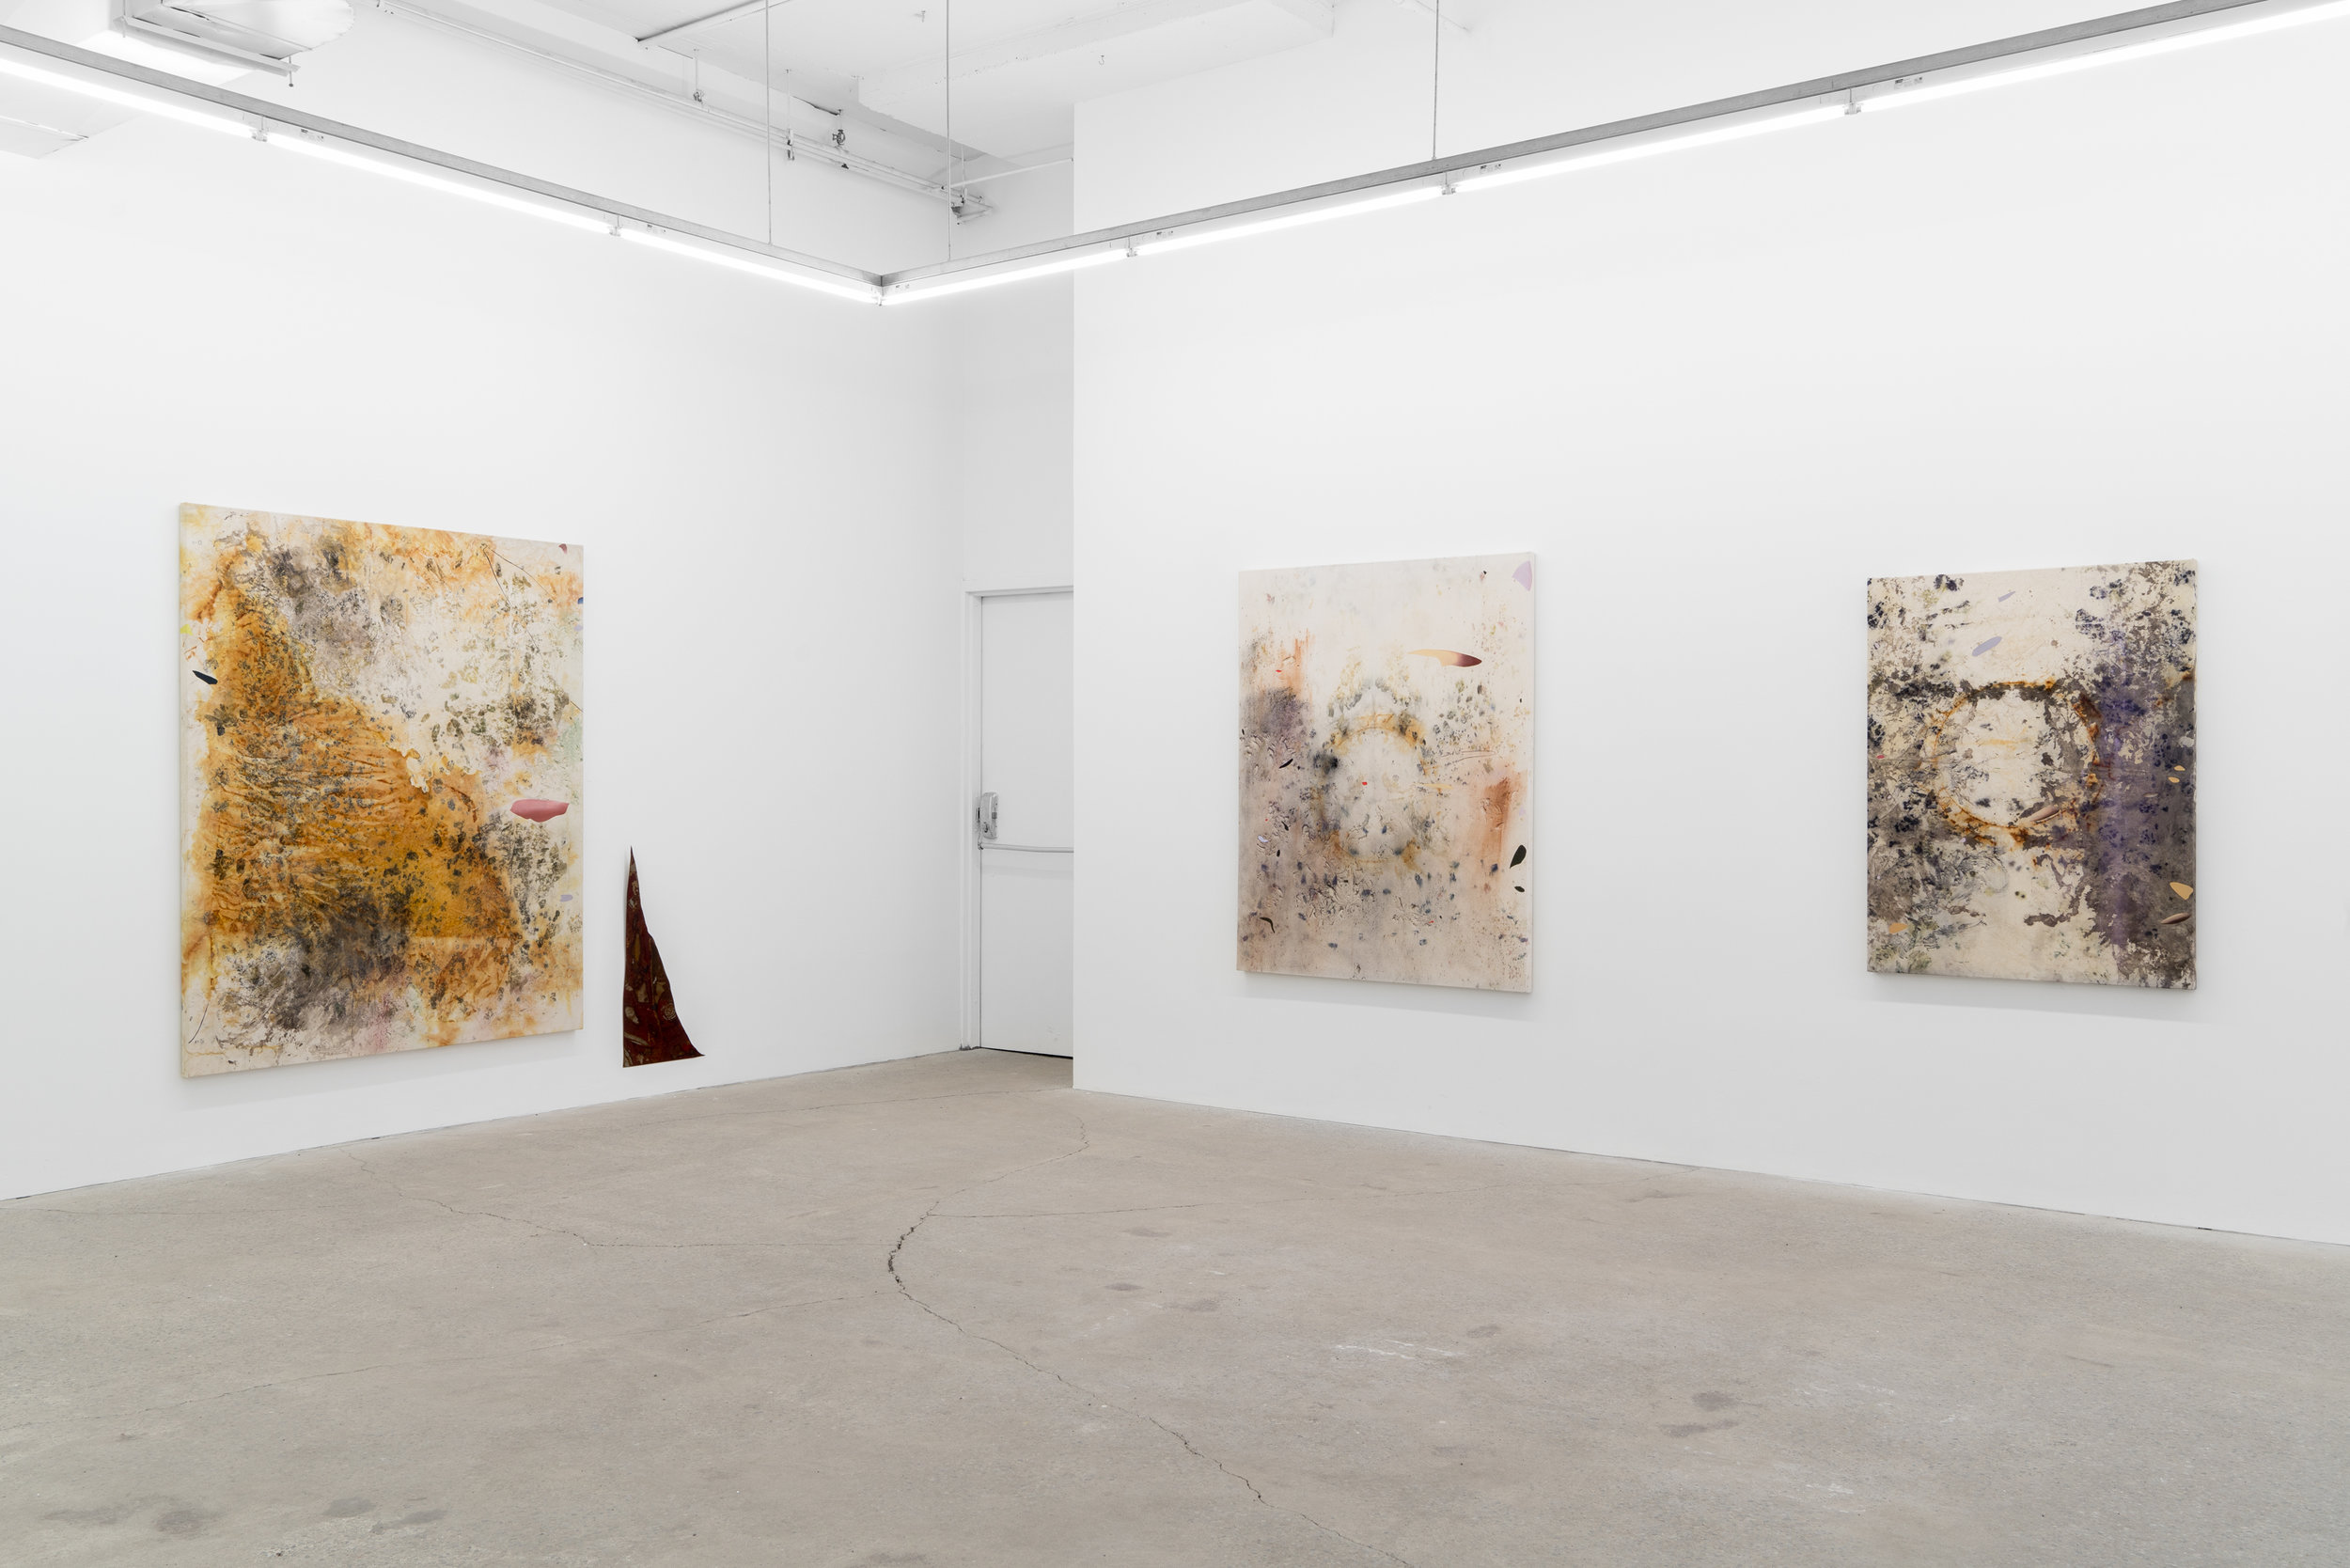 Sediment Installation, Solo Exhibition at Galerie Nicolas Robert, Montreal, QC, 2019